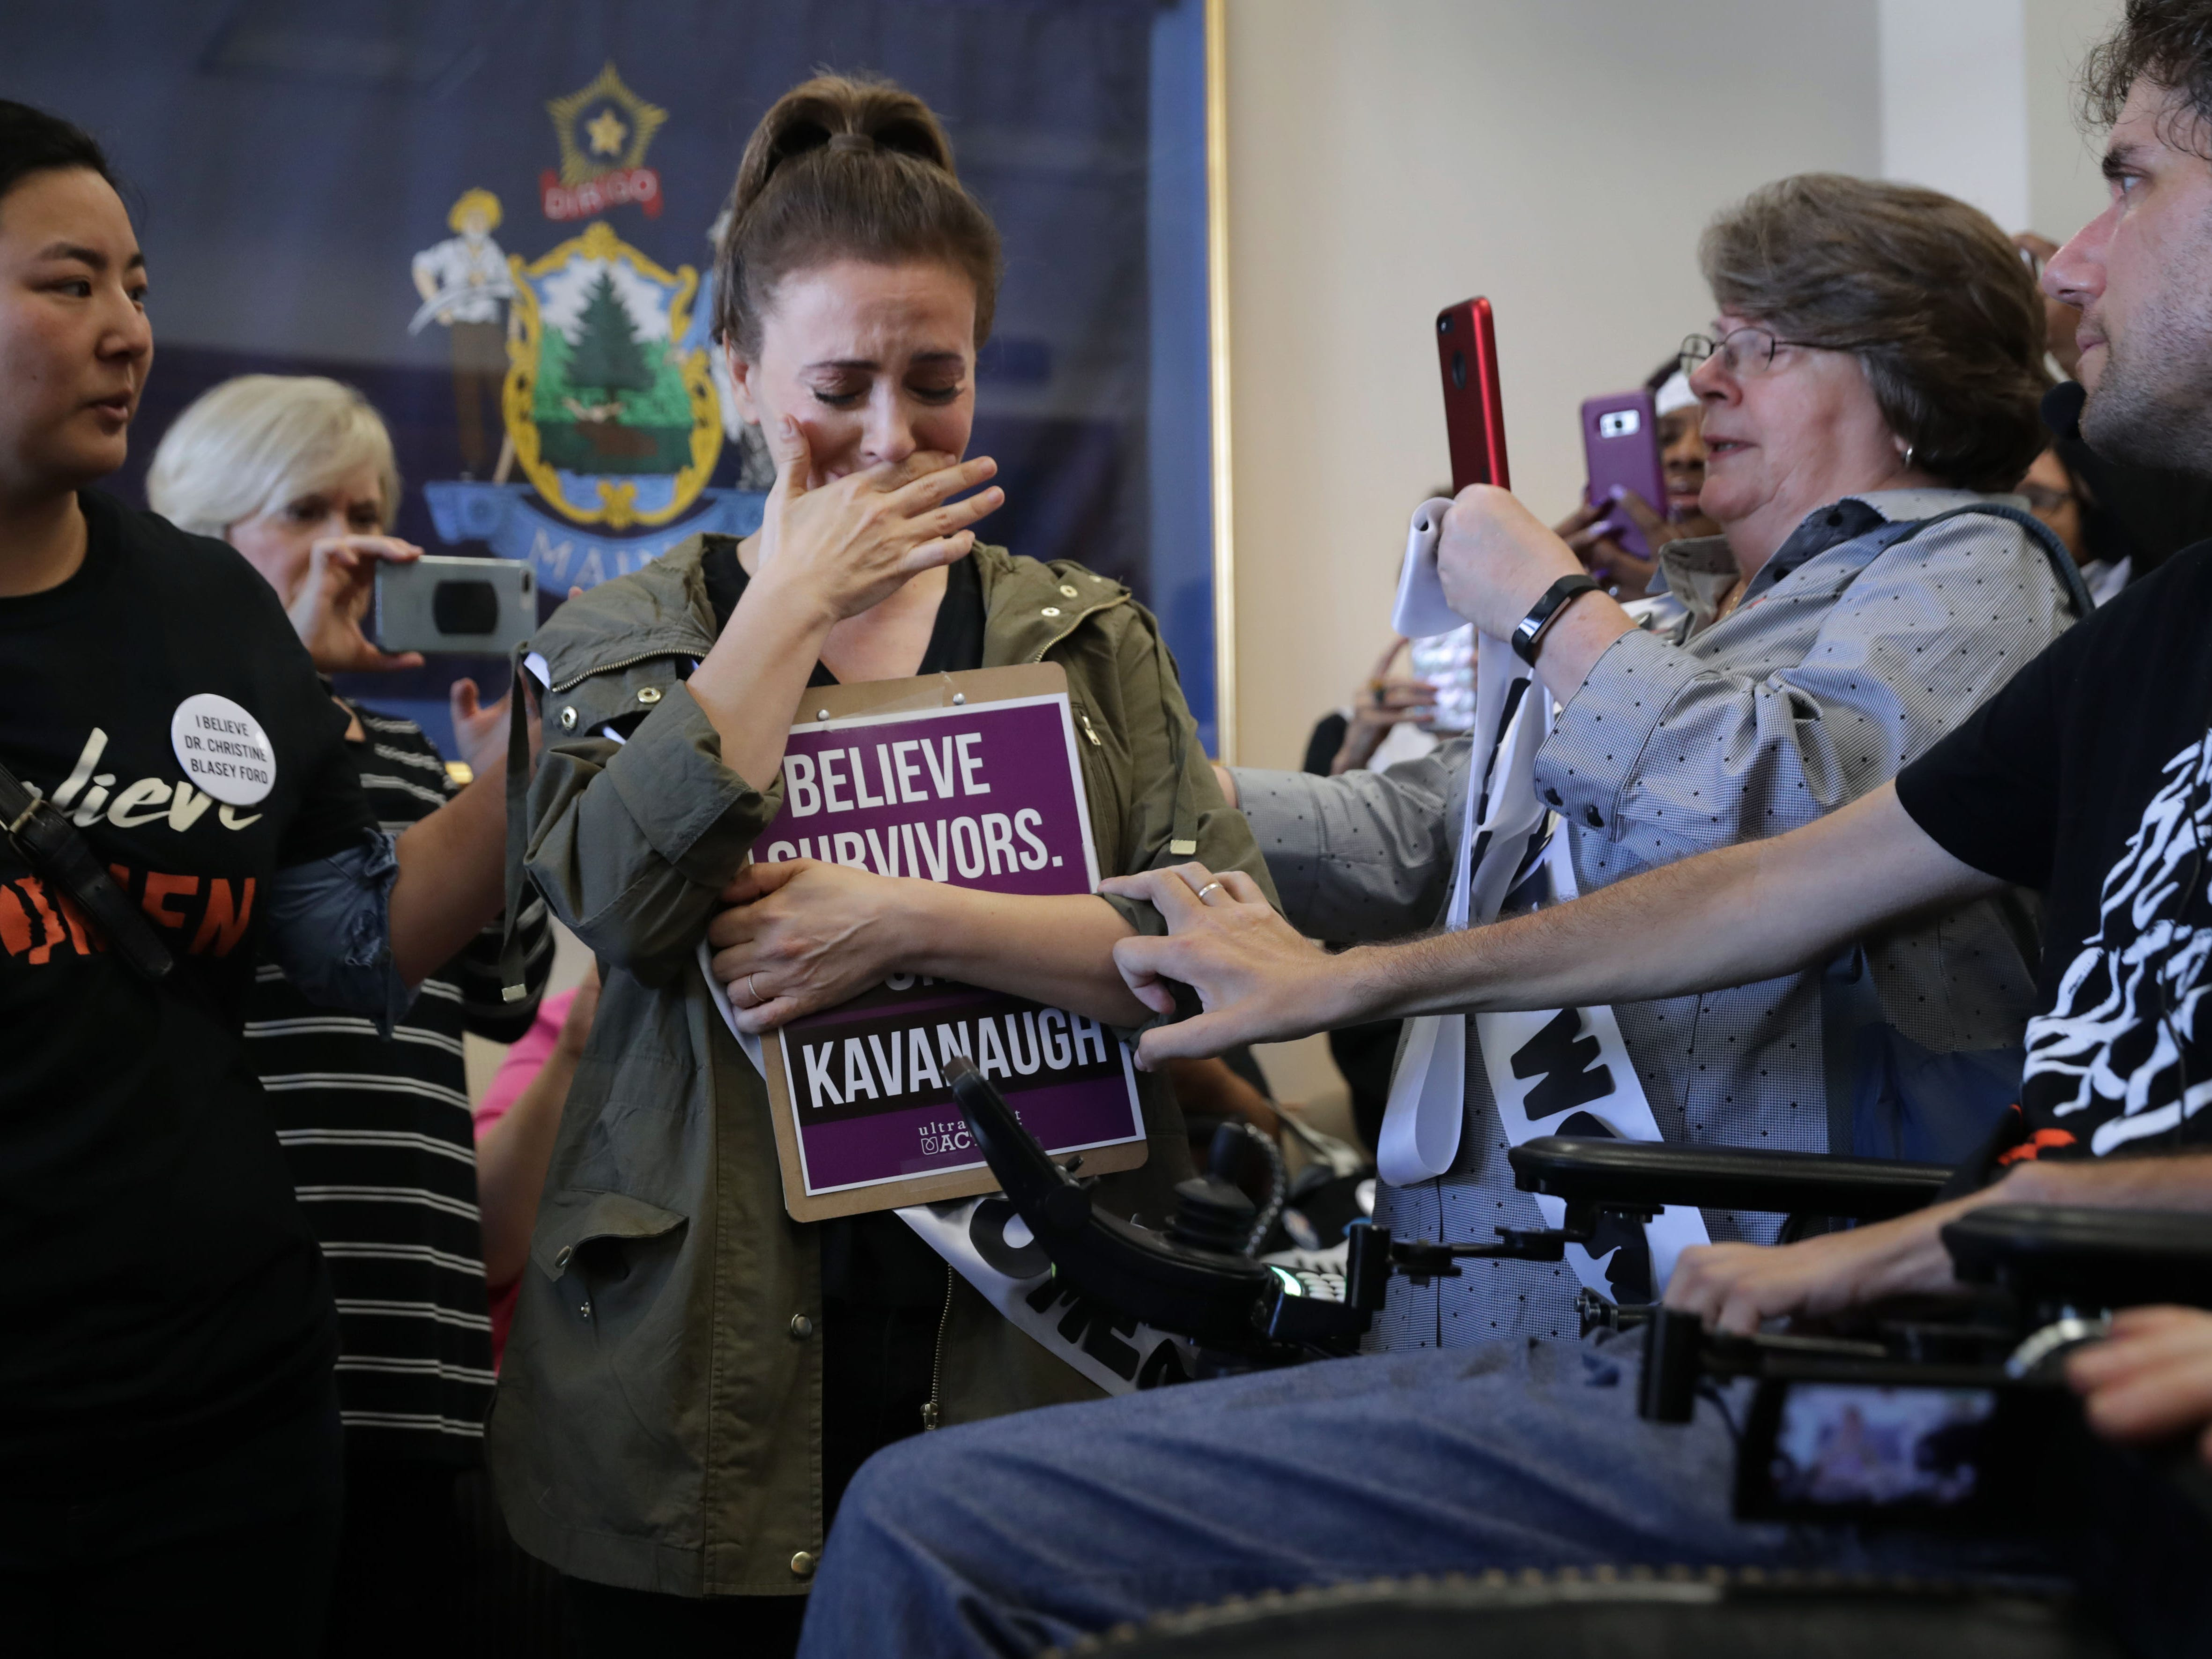 WASHINGTON, DC - SEPTEMBER 26: Actress Alyssa Milano is comforted after telling her story of being sexually assaulted while she and dozens of other protesters demonstrate against the appointment of Supreme Court nominee Judge Brett Kavanaugh  in the office of Sen. Susan Collins (R-ME) in the Dirksen Senate Office Building on Capitol Hill September 26, 2018 in Washington, DC. More than a dozen protesters, many of them survivors of sexual assault, were arrested after visiting the offices of three women senators to demonstrate against the appointment of Kavanuagh, who has been accused by at least two women of sexual assault. (Photo by Chip Somodevilla/Getty Images) ORG XMIT: 775233312 ORIG FILE ID: 1044928400